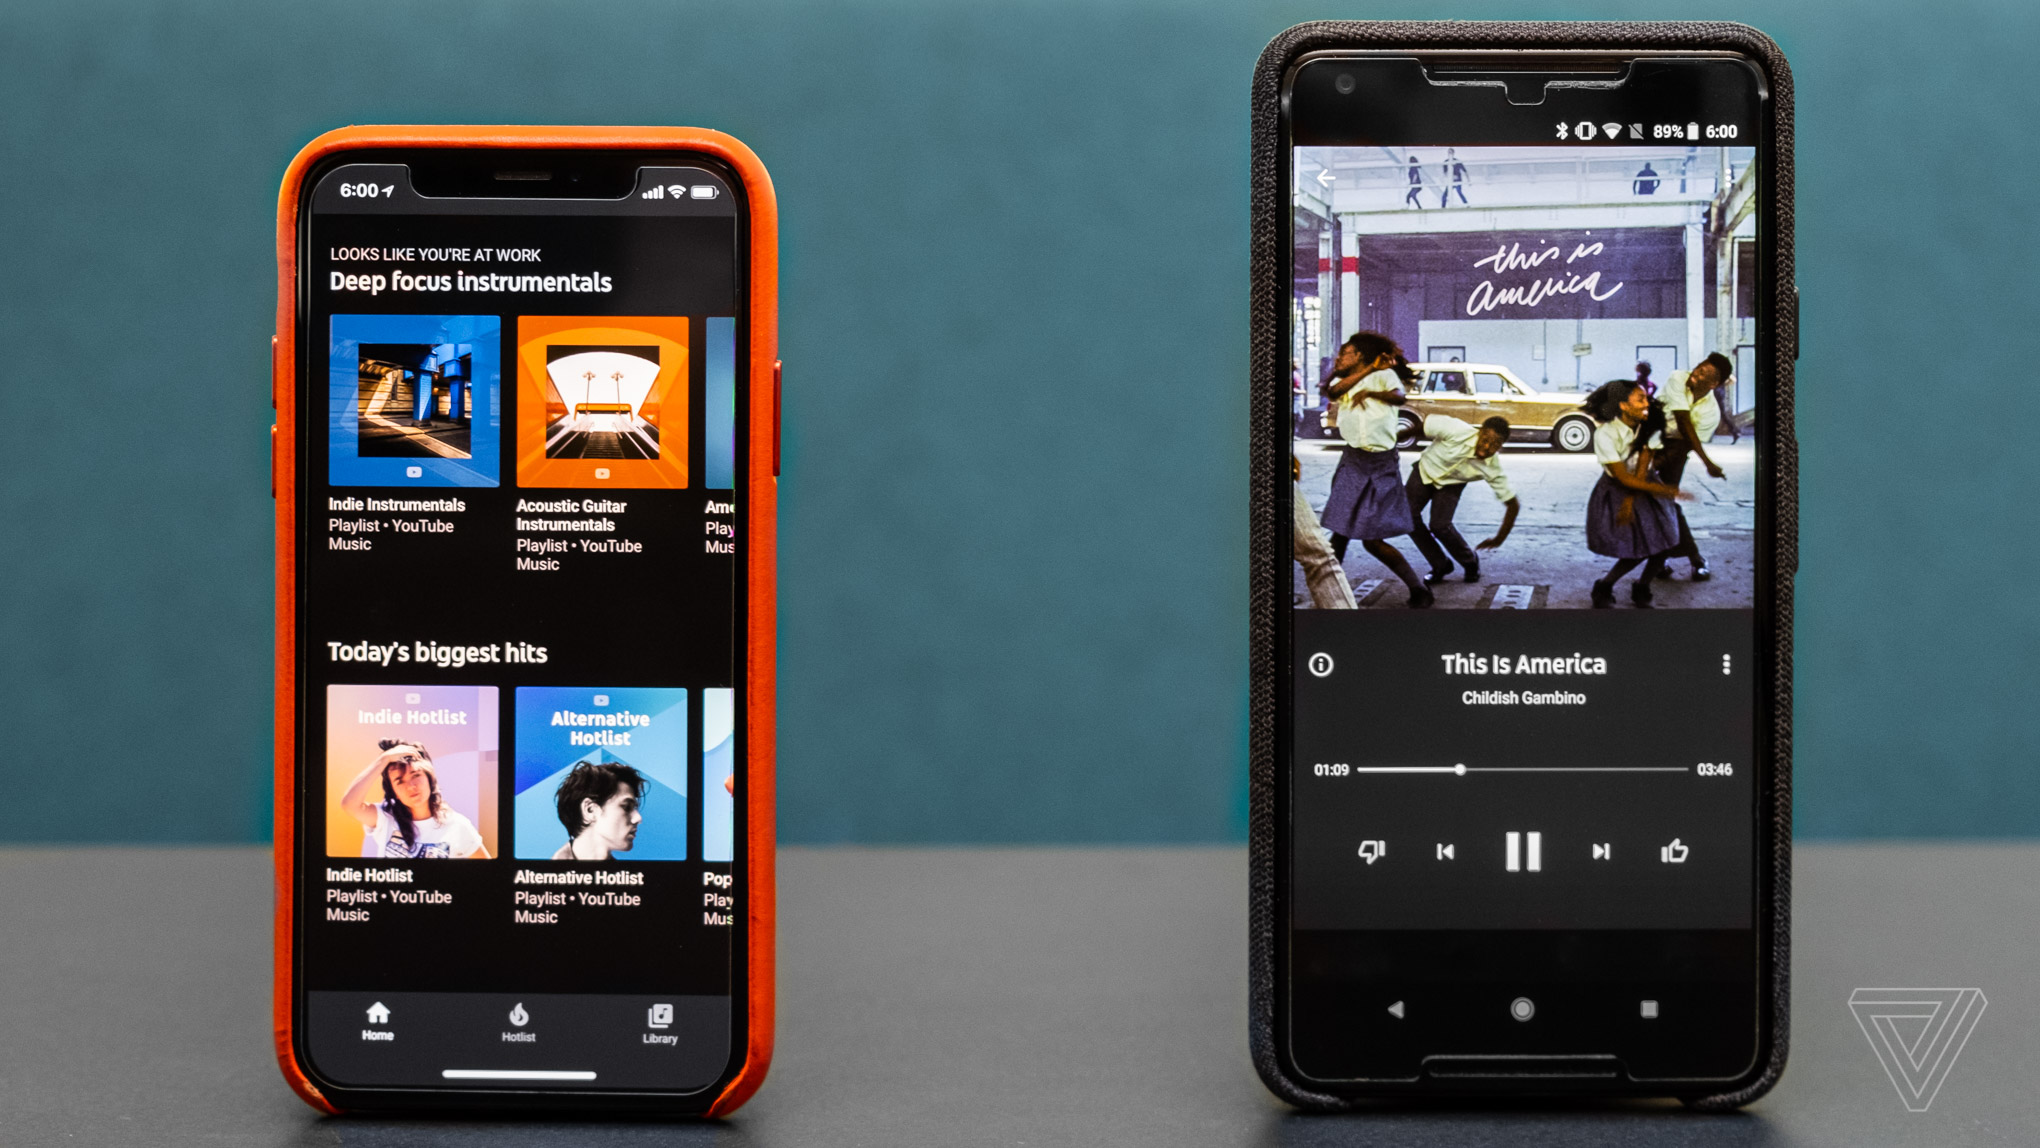 YouTube Music Review - The Verge